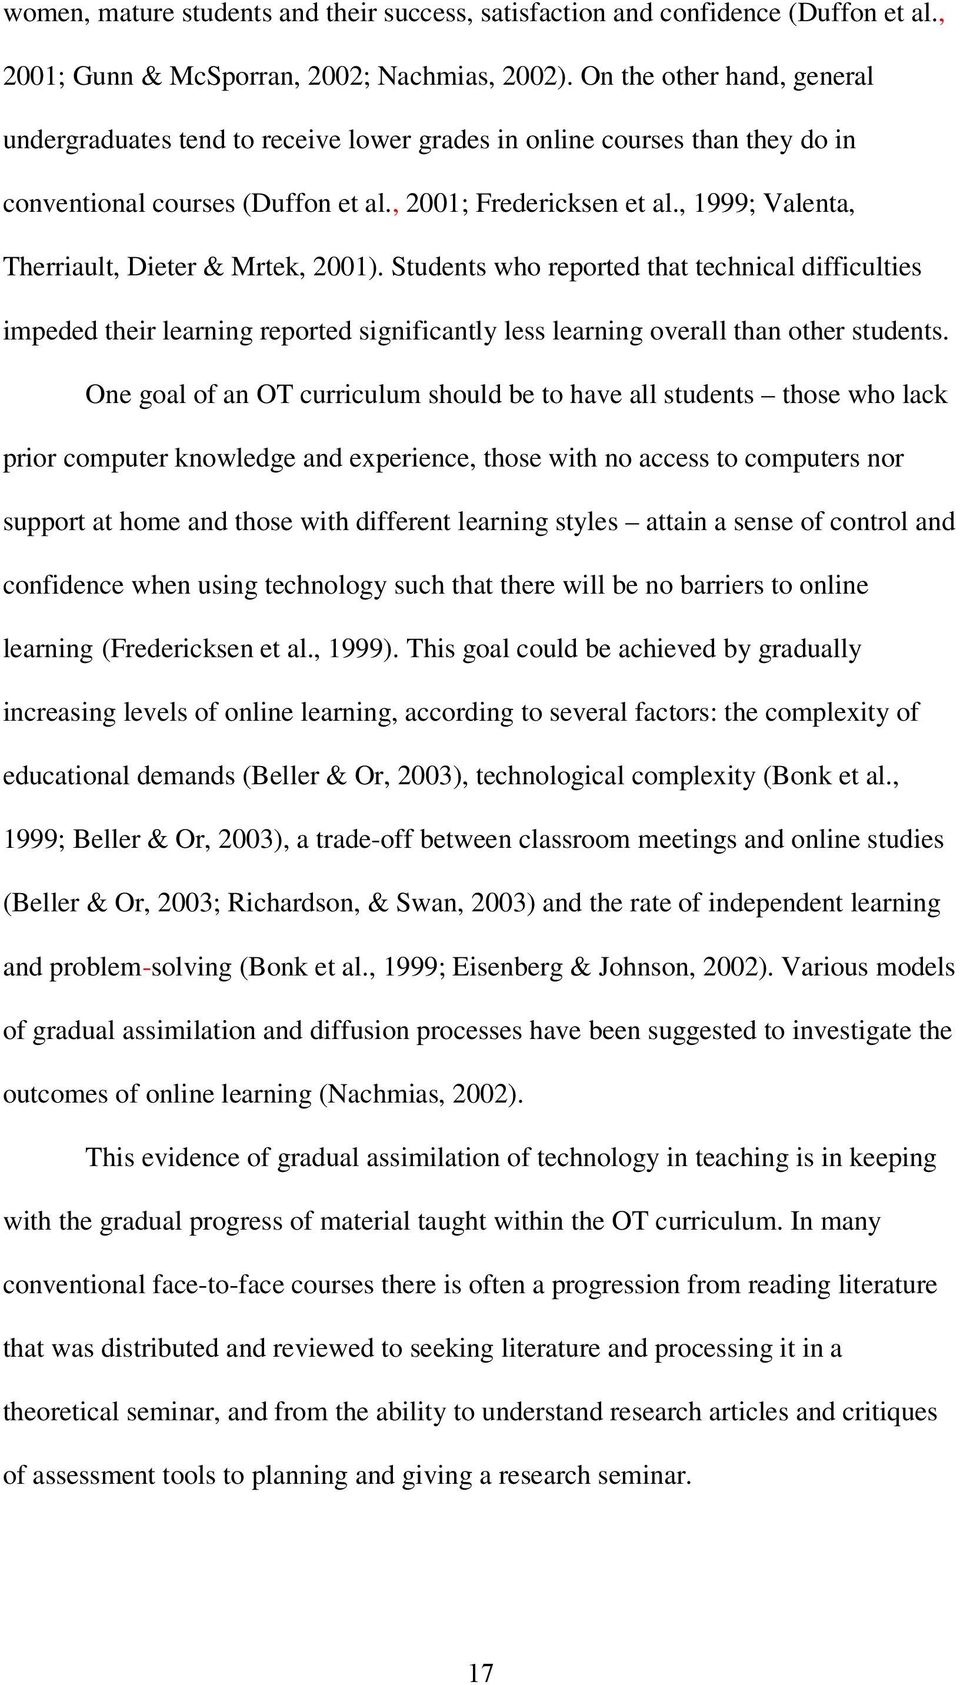 , 1999; Valenta, Therriault, Dieter & Mrtek, 2001). Students who reported that technical difficulties impeded their learning reported significantly less learning overall than other students.